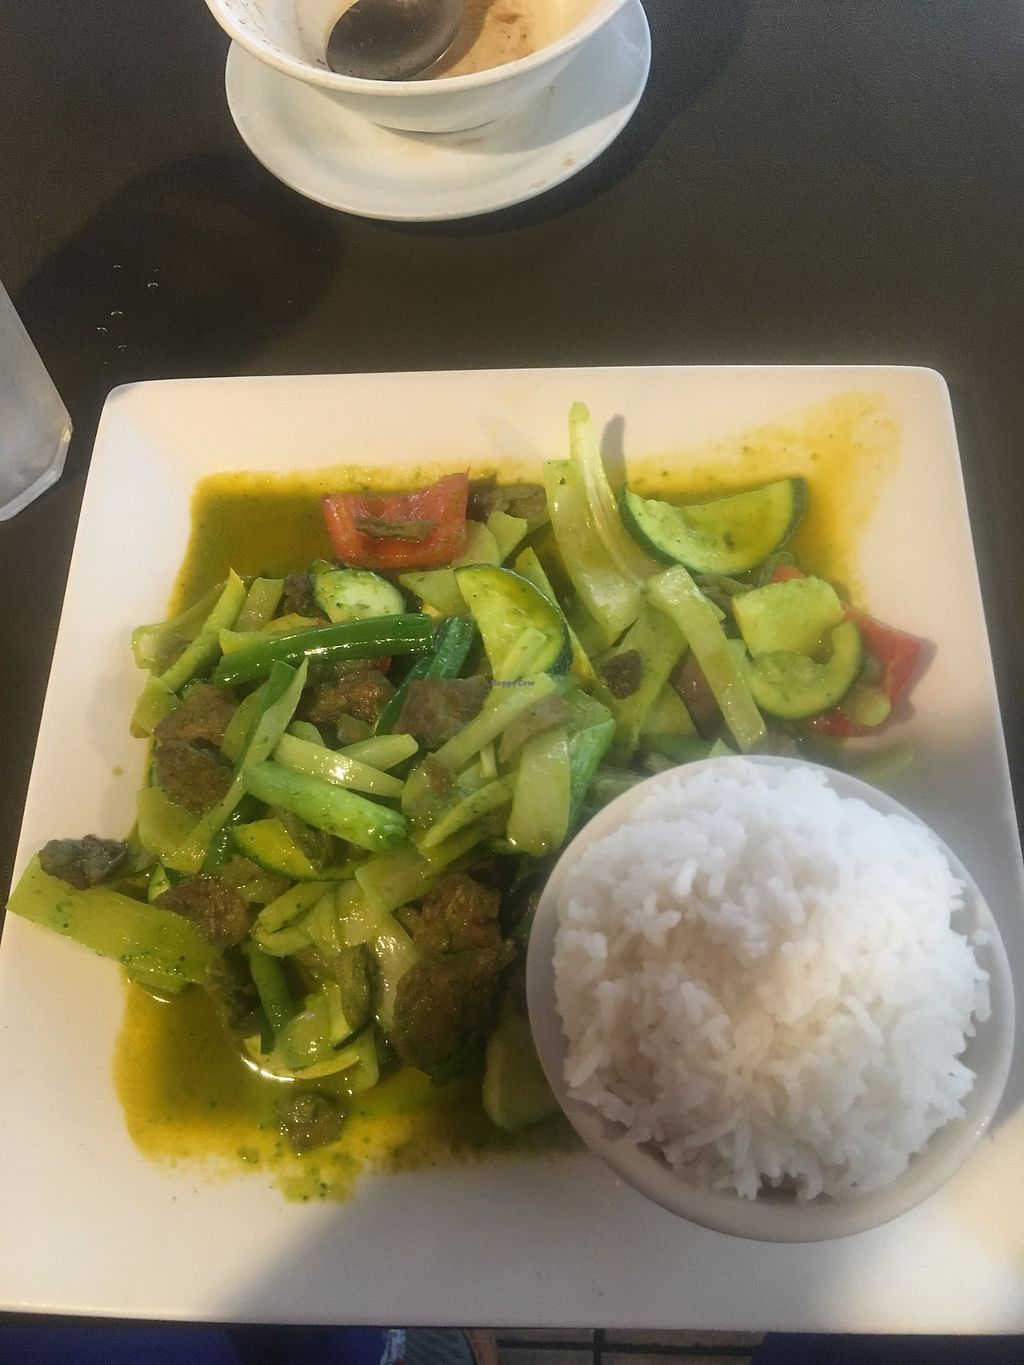 """Photo of My Thai Vegan Cafe  by <a href=""""/members/profile/770veg"""">770veg</a> <br/>Thai green curry <br/> April 25, 2018  - <a href='/contact/abuse/image/4965/390968'>Report</a>"""